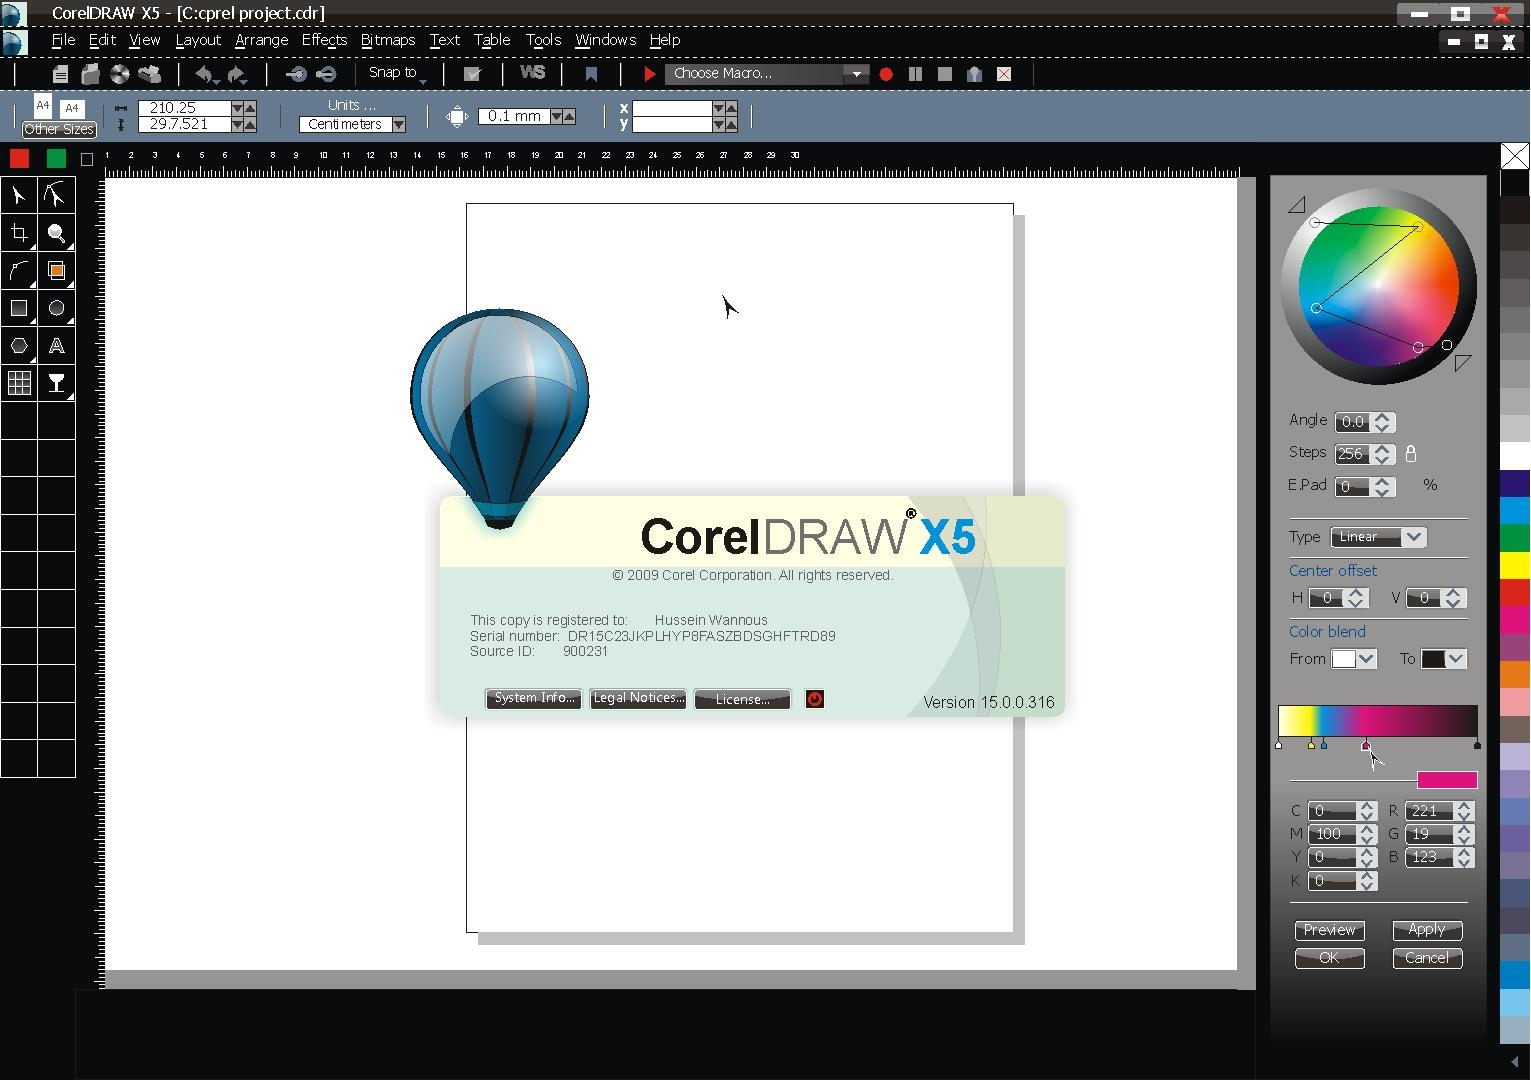 Coreldraw version 12 - Corel Draw 12 Download Free Full Version